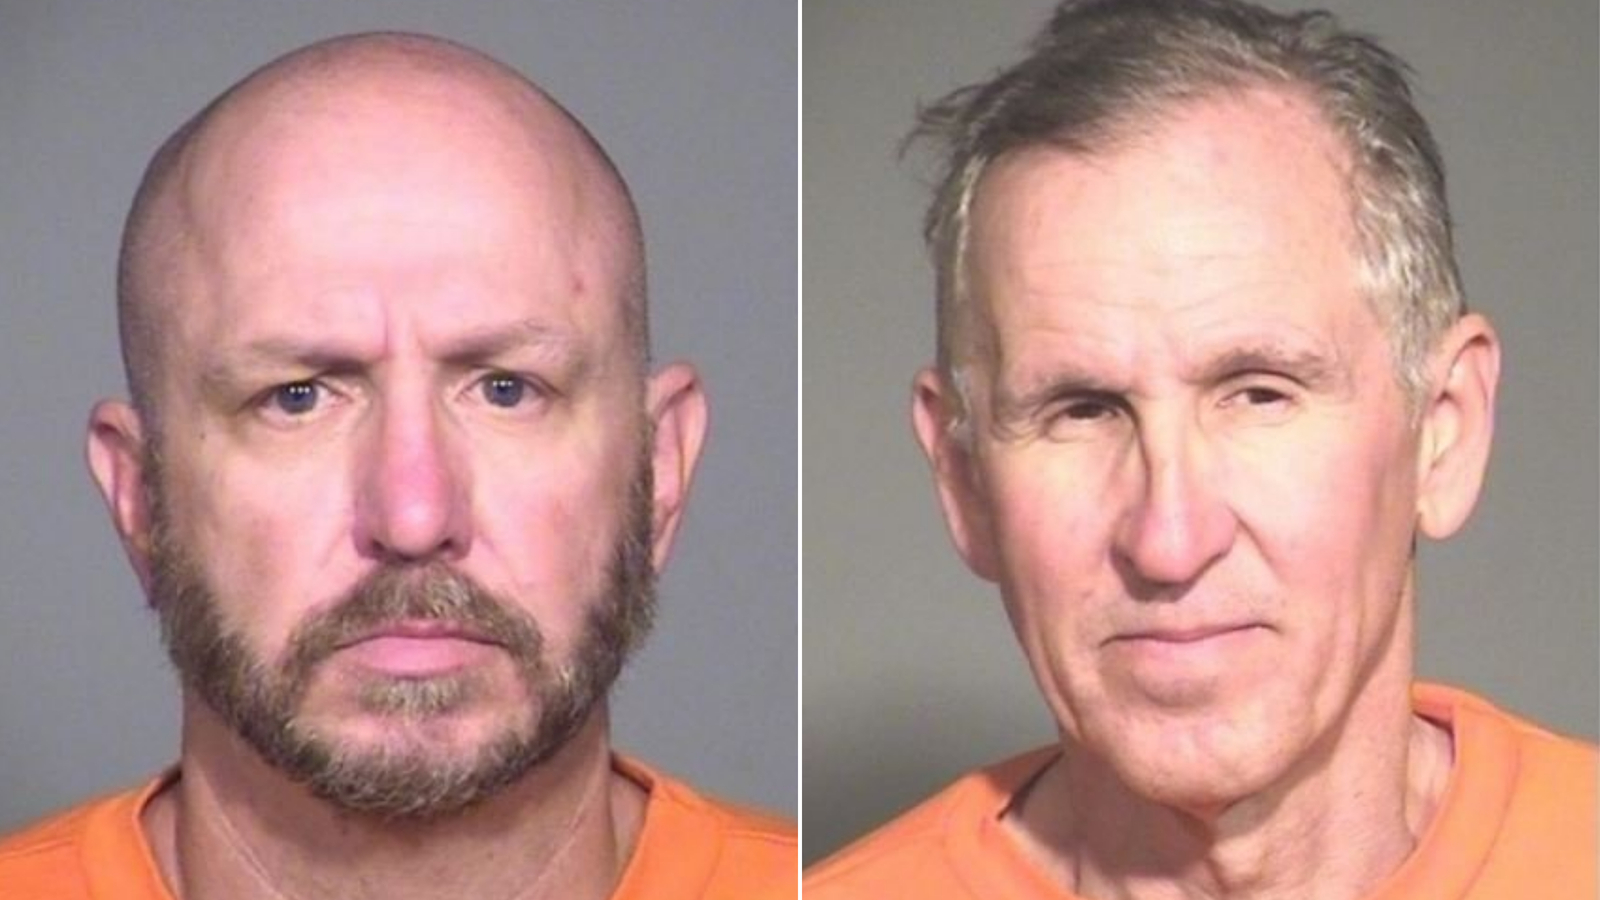 Arizona law enforcement agents are searching for two escaped inmates facing dozens of years in prison